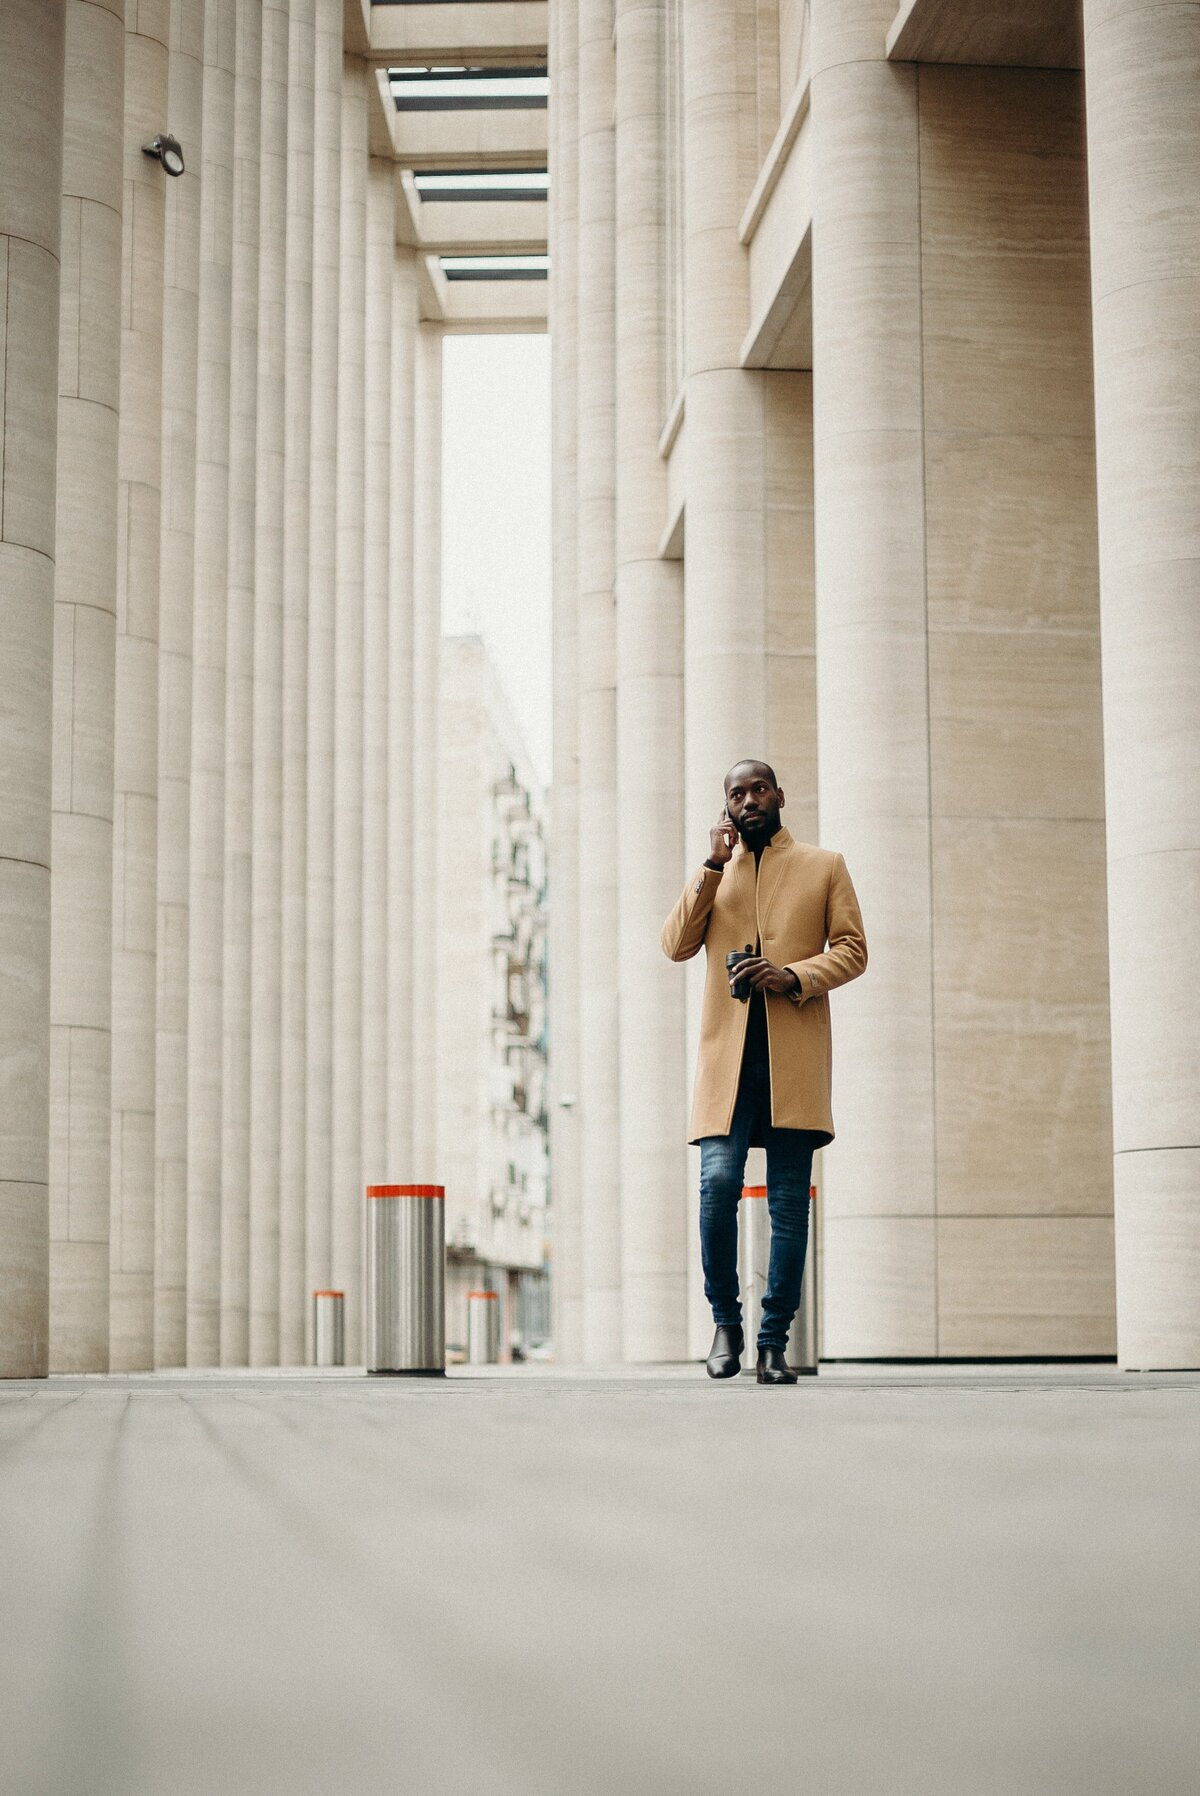 man-in-brown-coat-standing-beside-concrete-wall-3206149